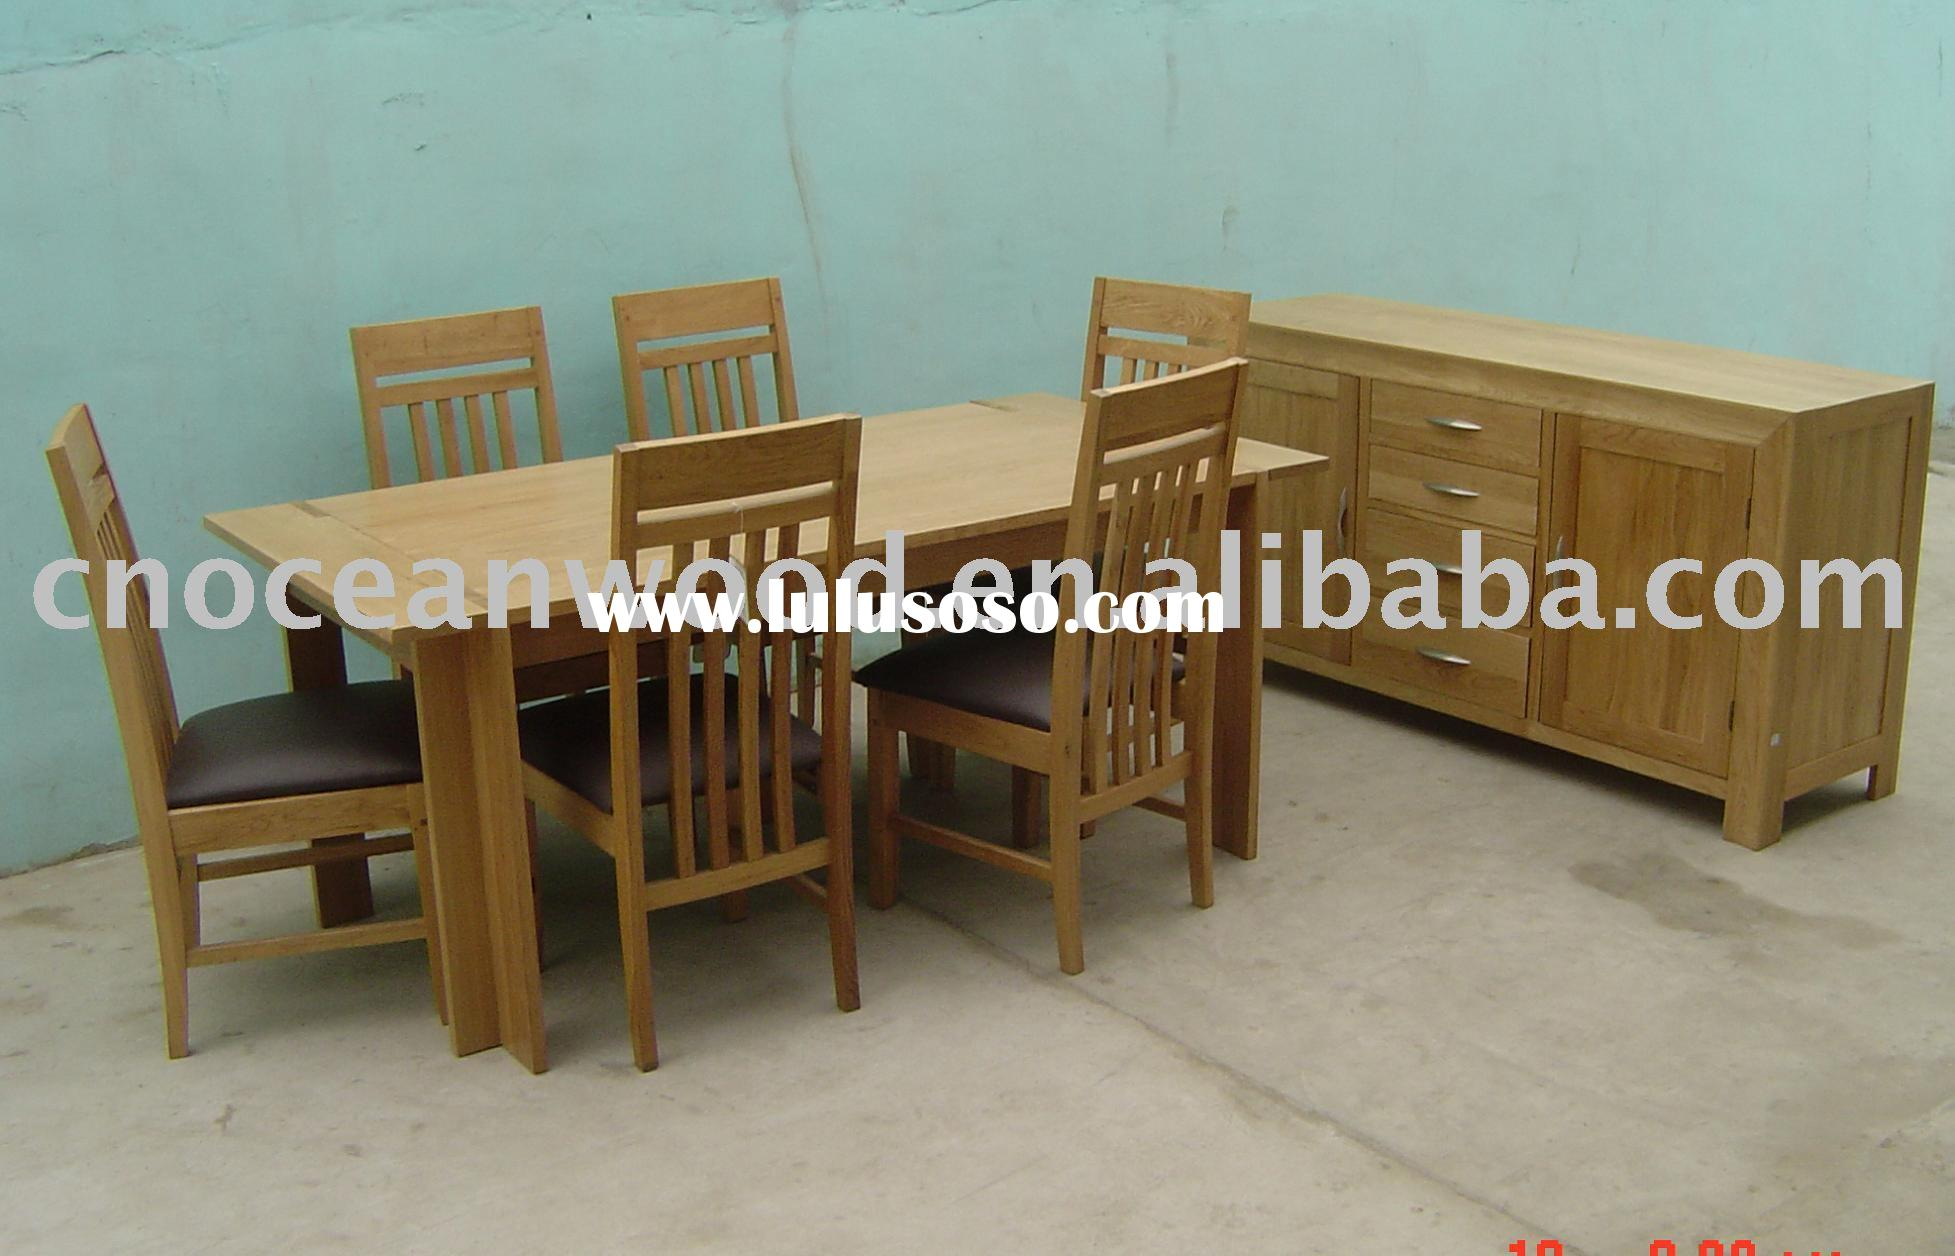 Dining Sets,table,slatted chairs,half-moon handle sideboard